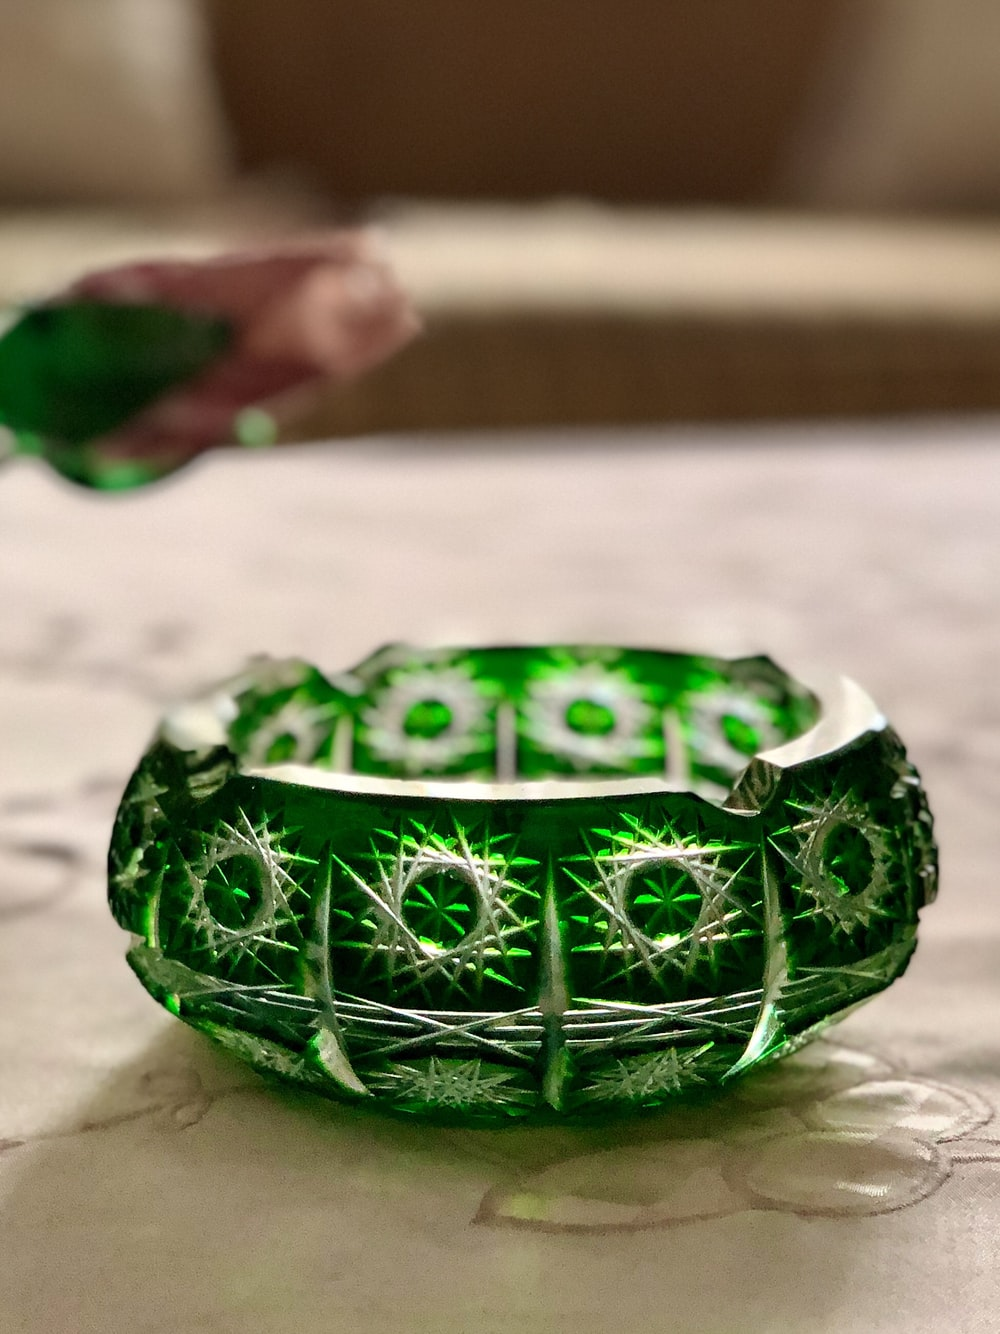 round green and white floral ashtray close-up photography